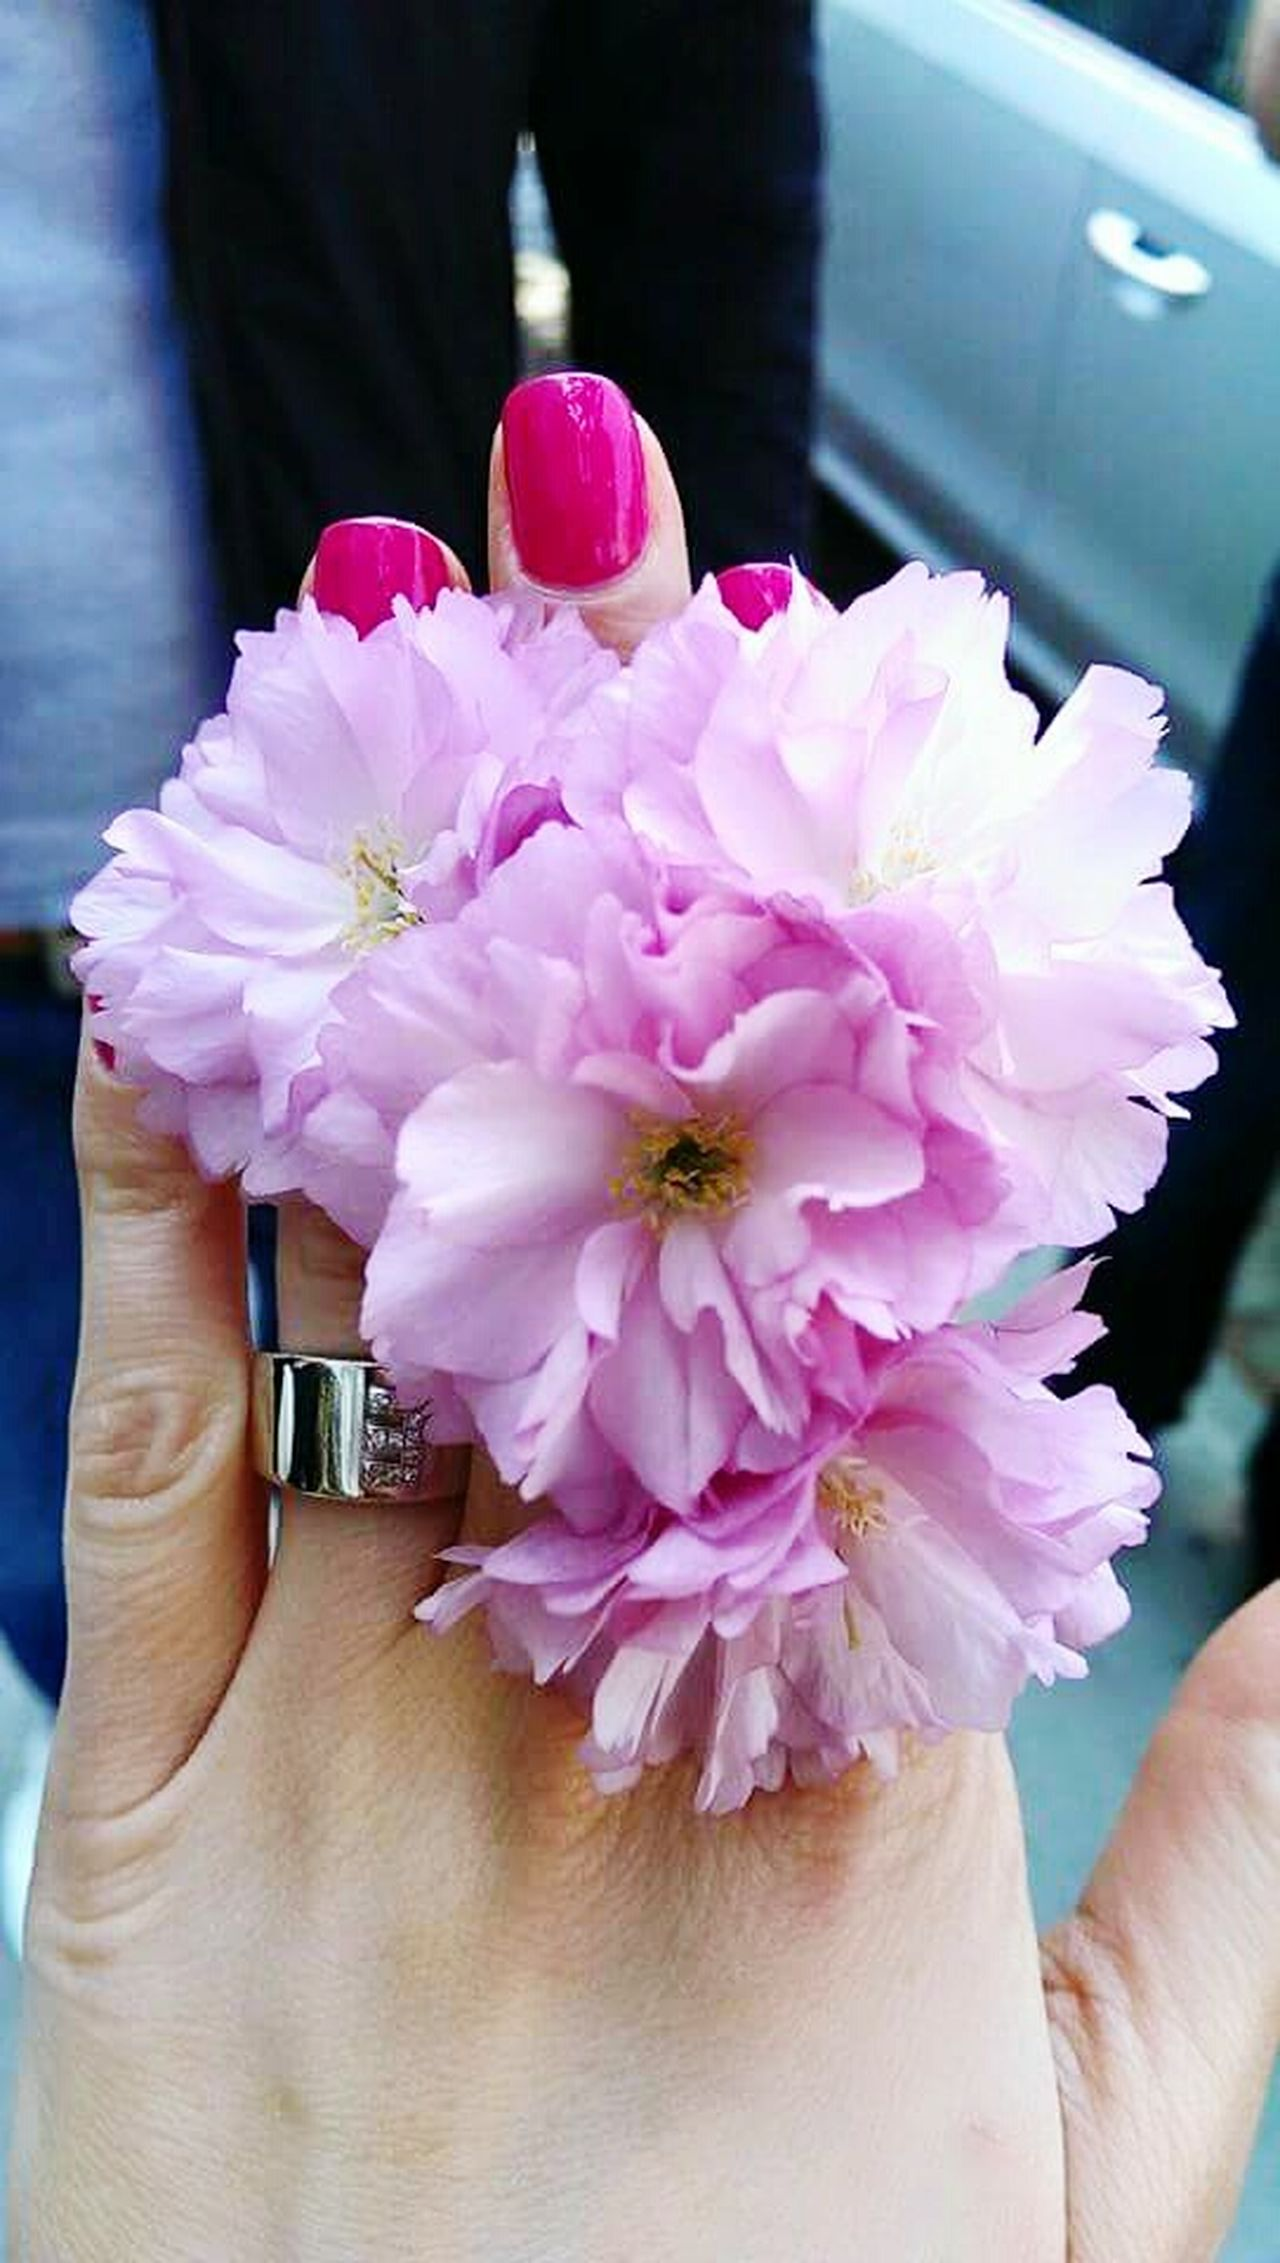 Pink Flower Nail Polish Pink Ring Womenpower Elegance And Class Hand Human Body Part Fingers Rings Daytime